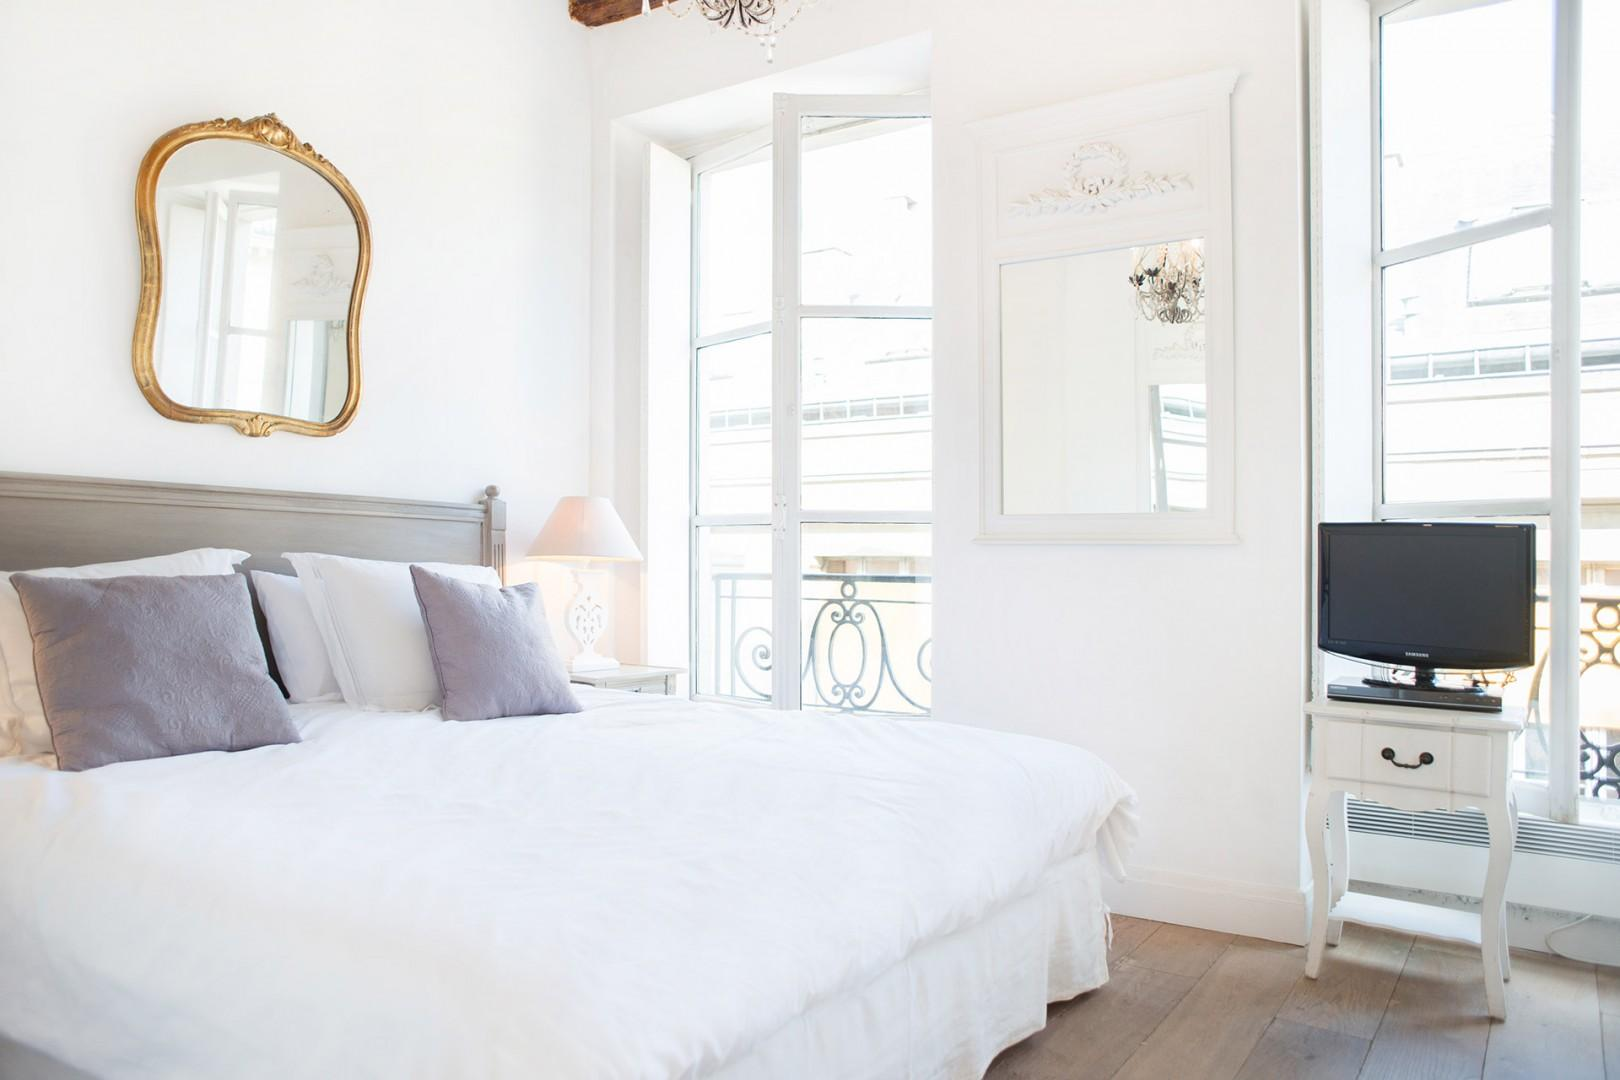 Relax in the spacious, bright bedroom with a large bed.